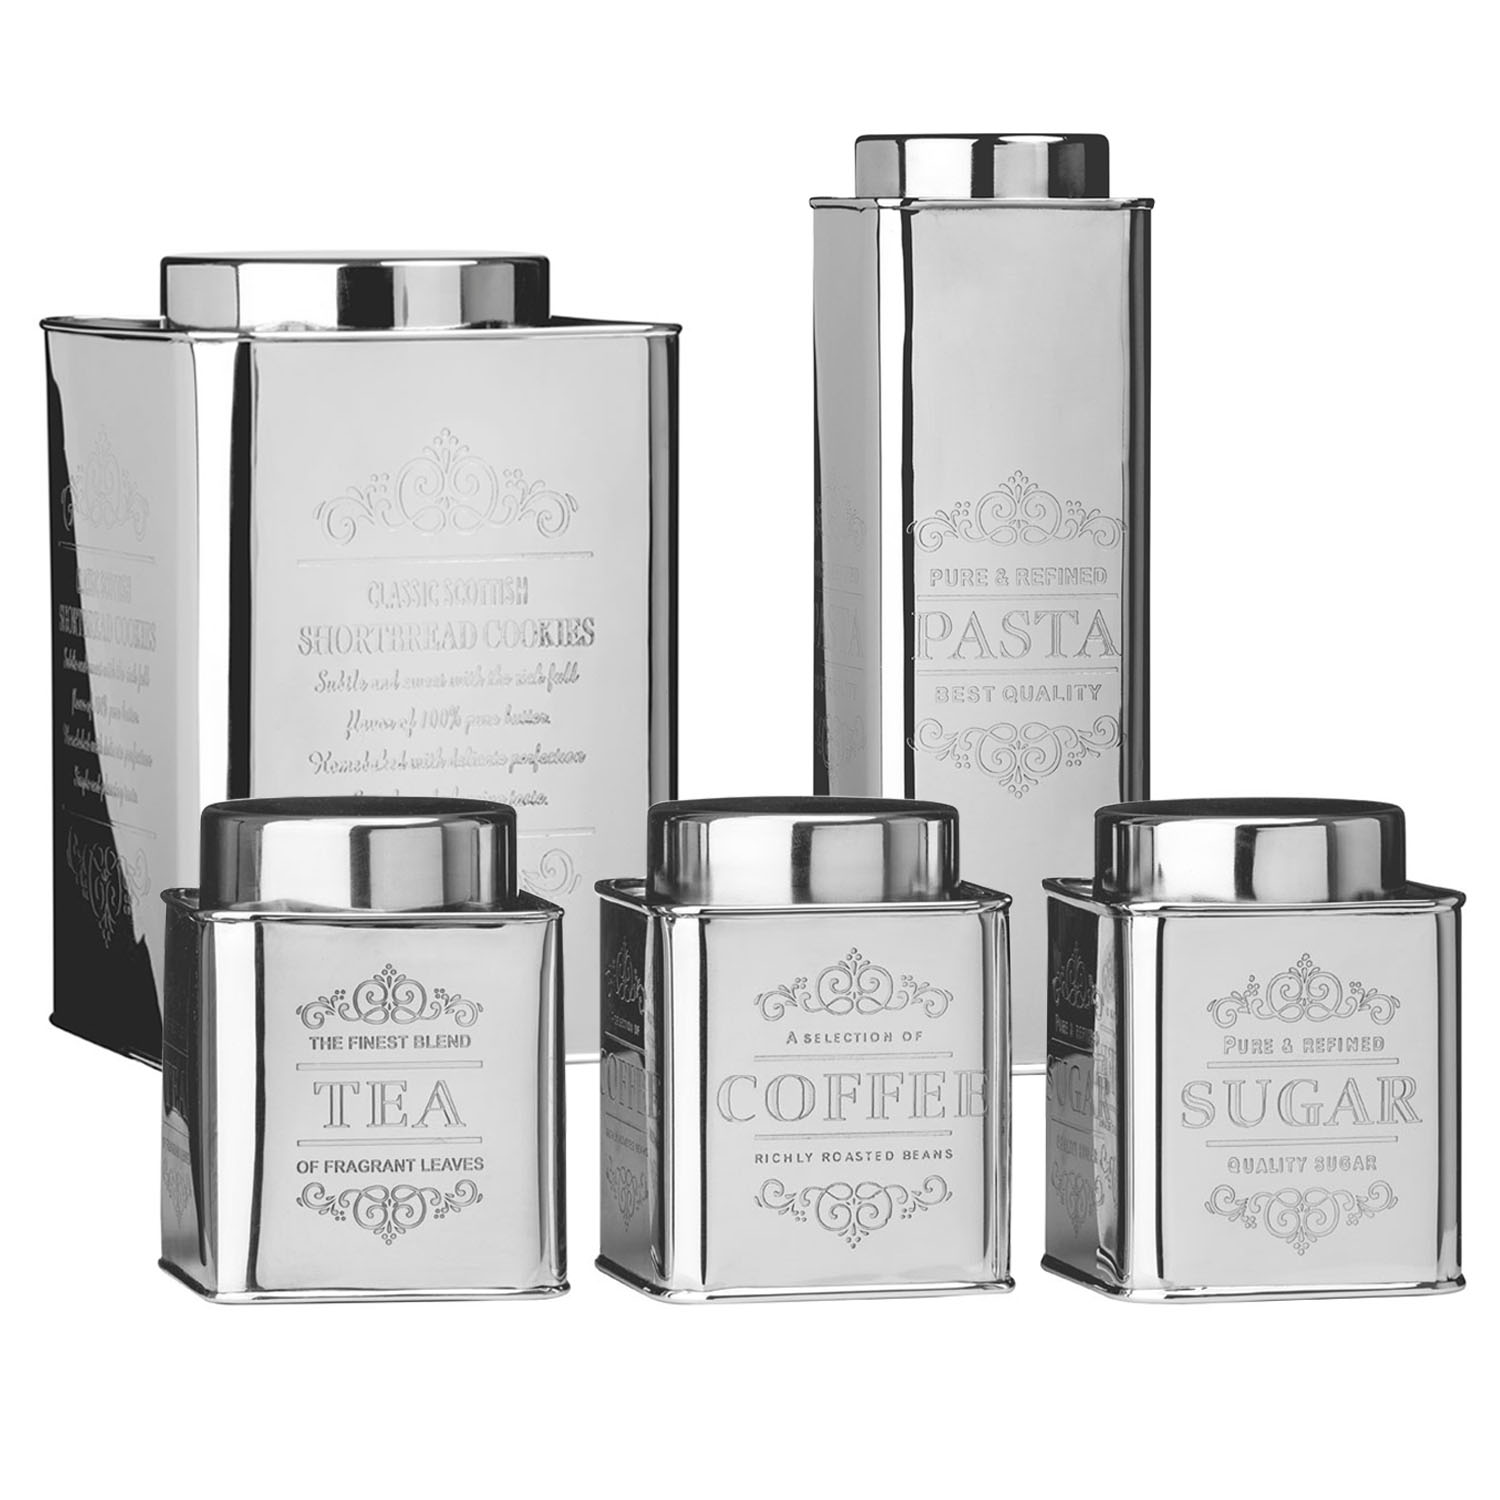 Tea Storage Canister Coffee Sugar Stainless Steel Tin Jar Holder Container